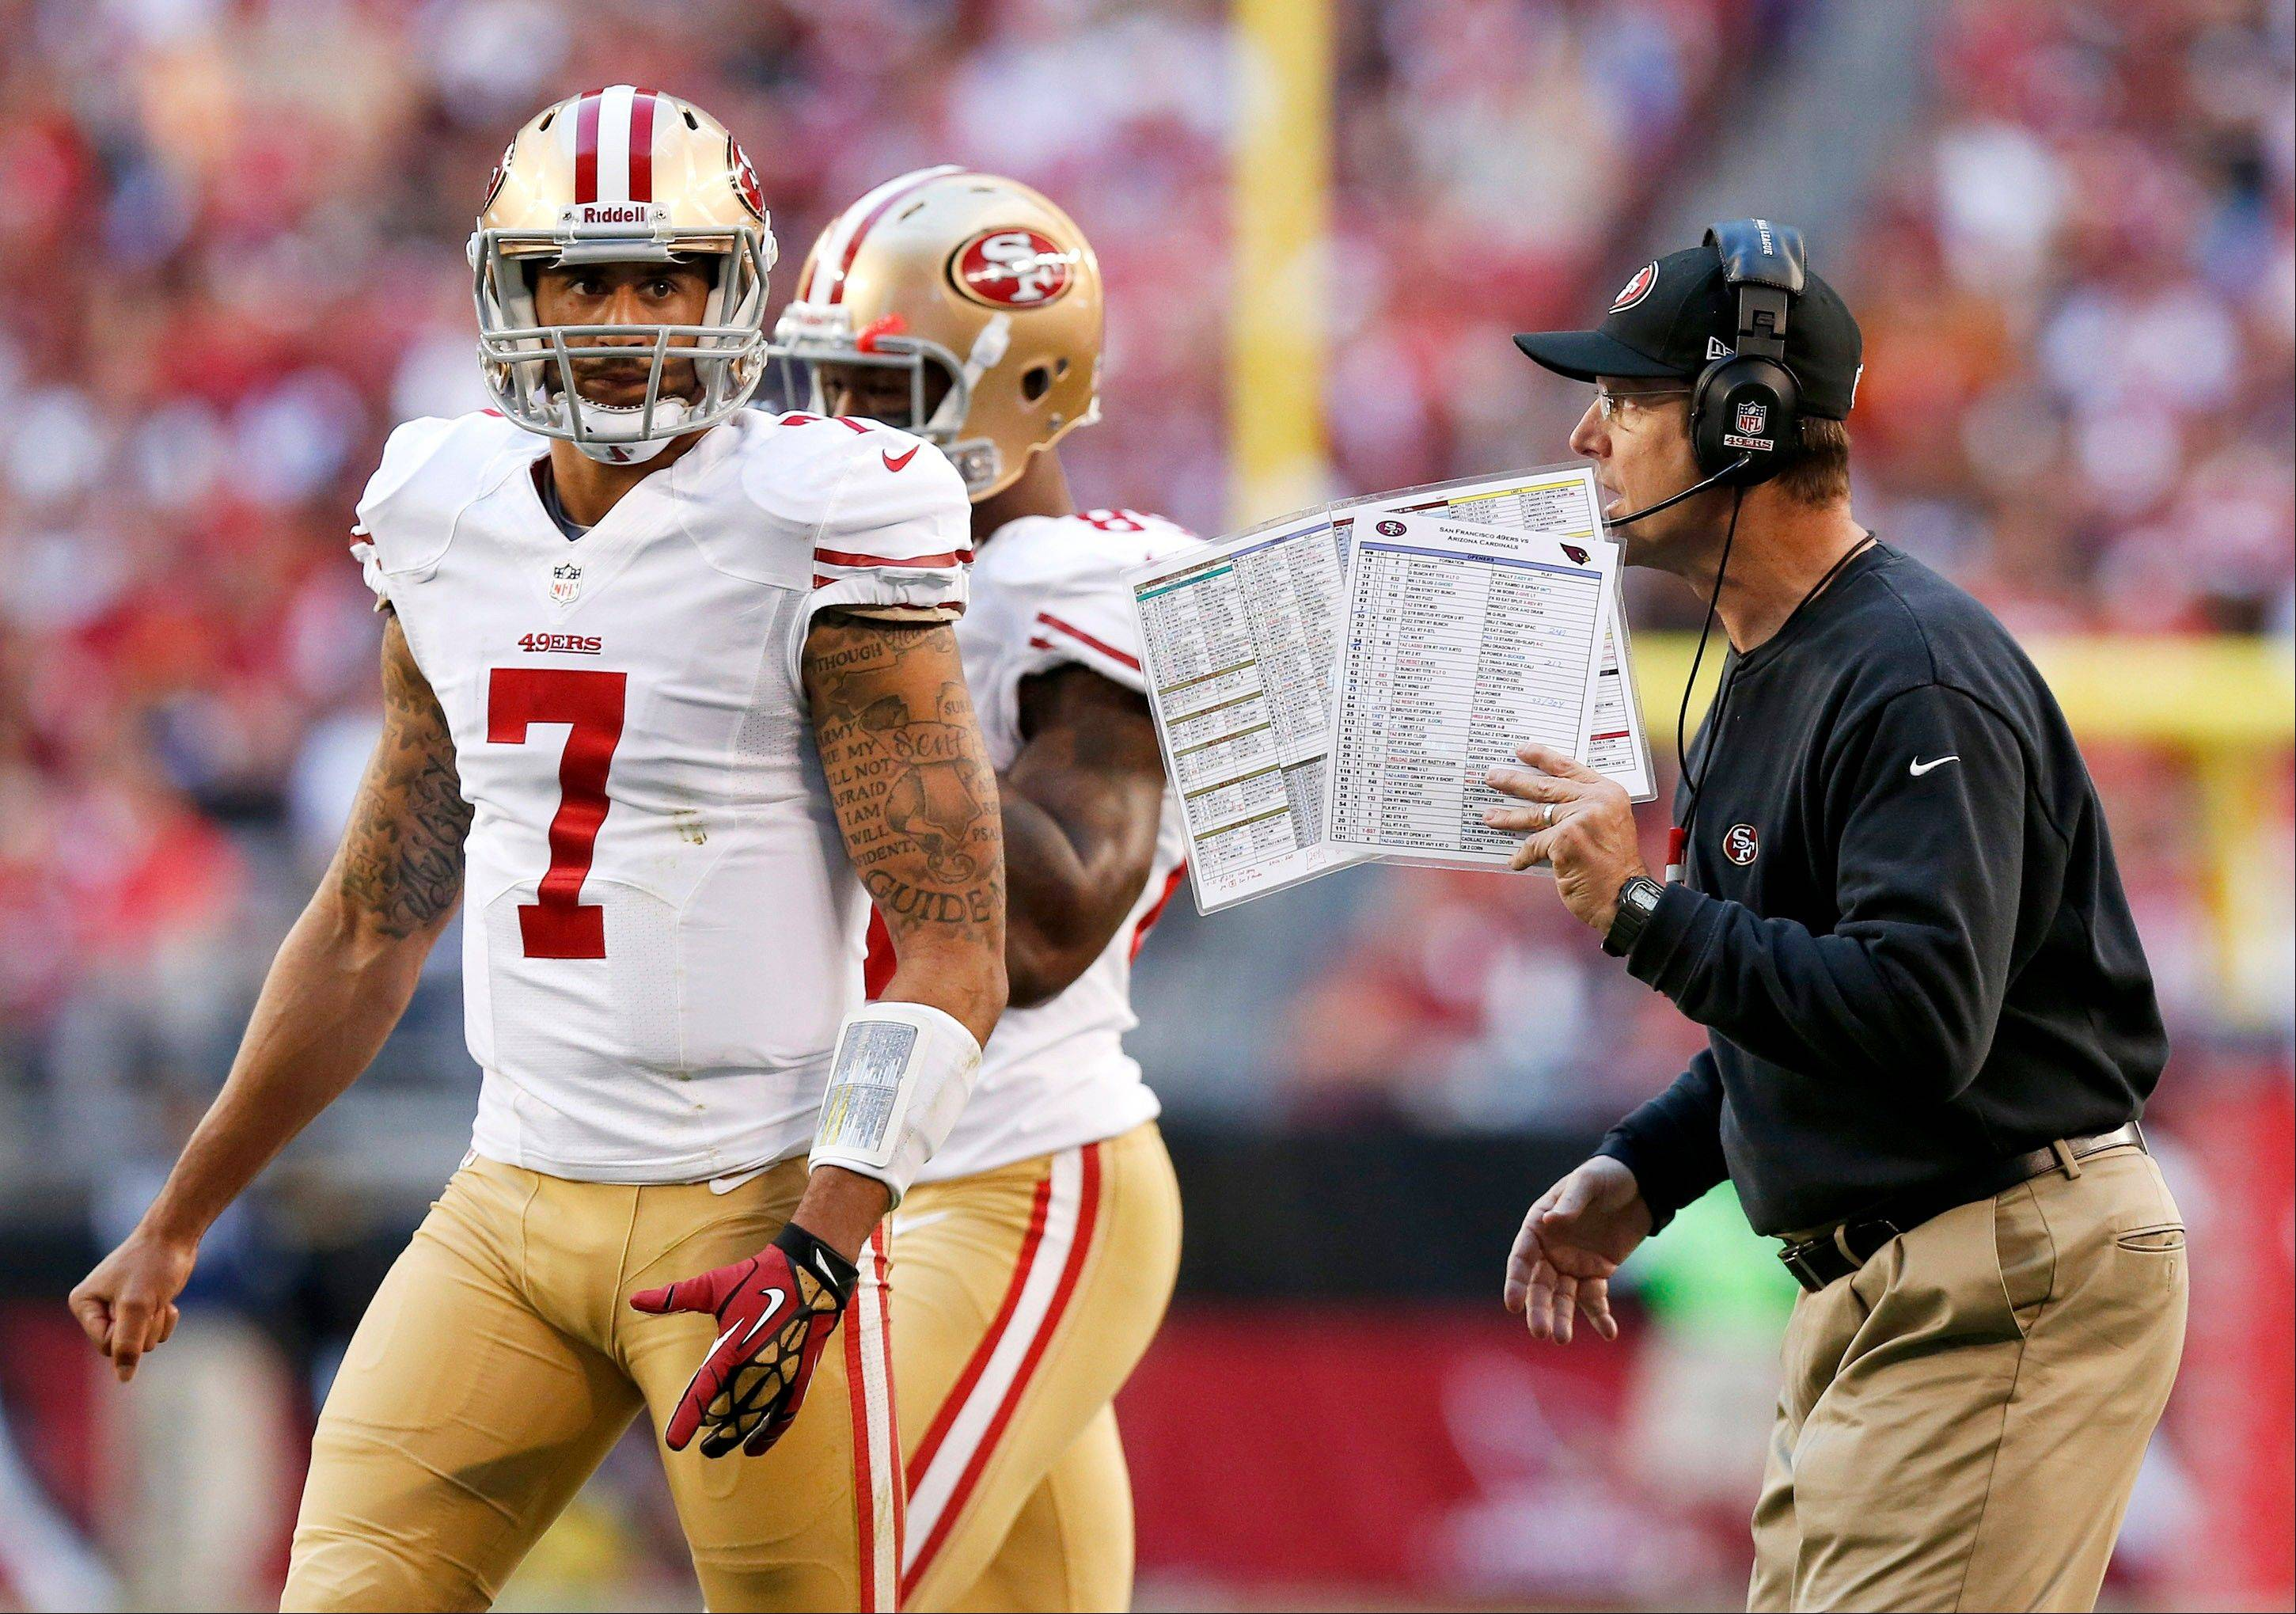 San Francisco 49ers head coach Jim Harbaugh, right, talks with quarterback Colin Kaepernick prior to a play during the first half of Sunday�s road game against the Arizona Cardinals. The 49ers will be back on the road for their first-round playoff game.